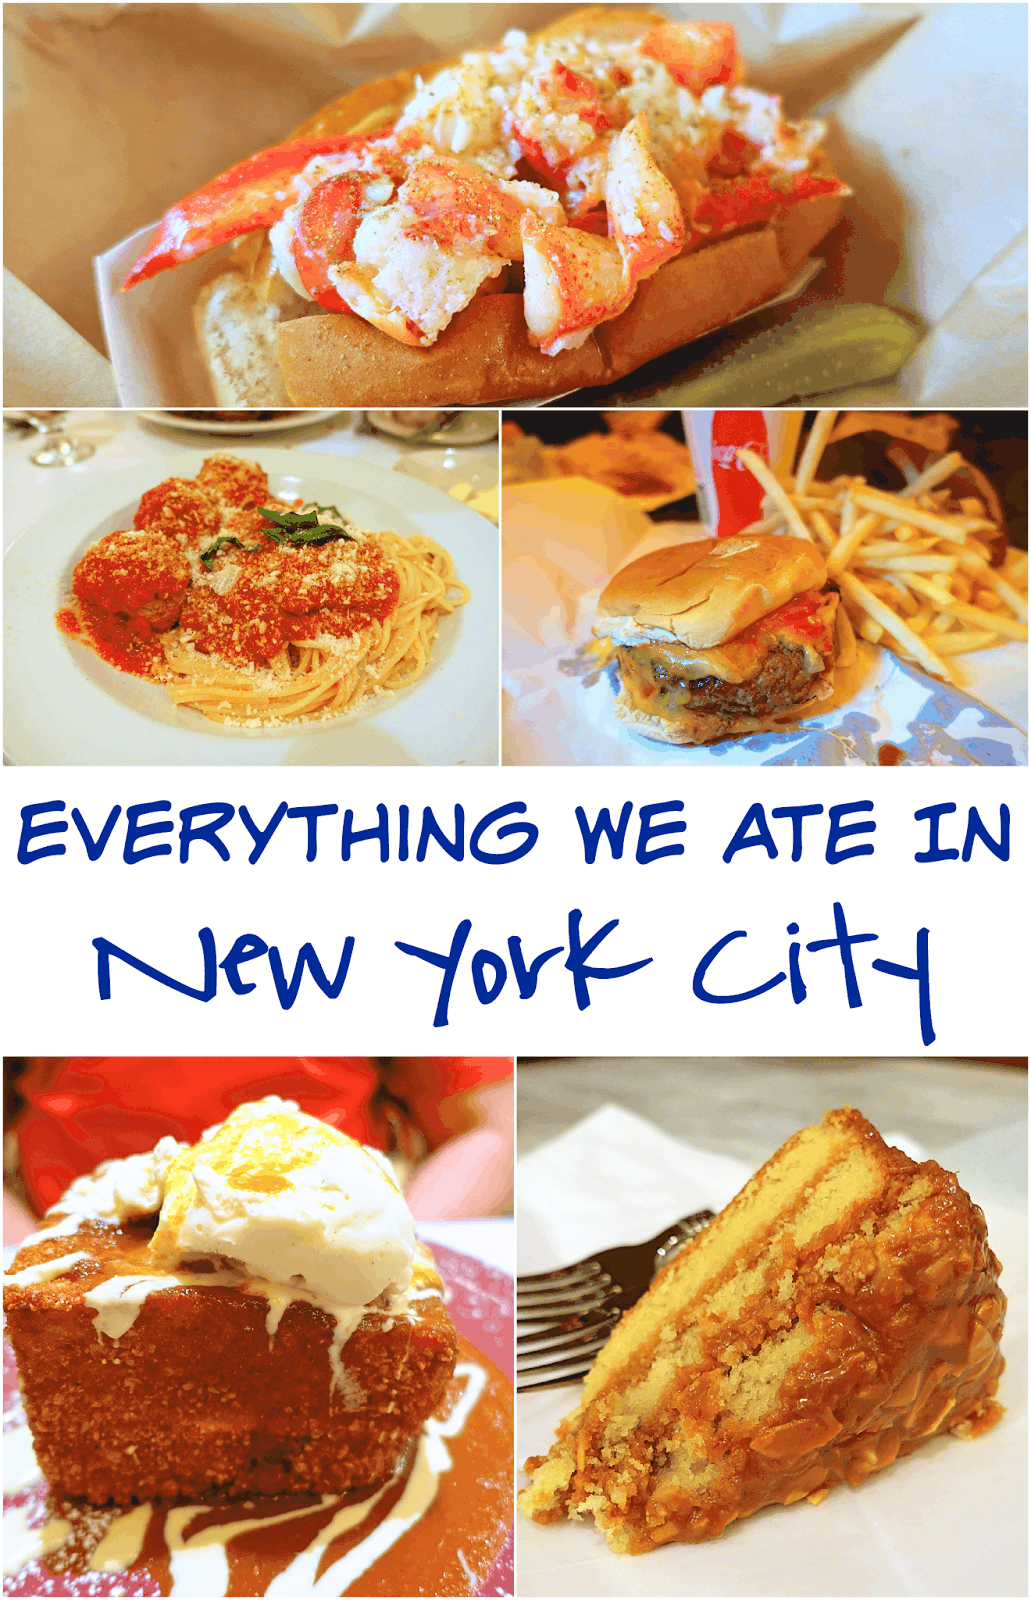 Everything We Ate in New York City - Patsy's Italian Restaurant, Bull & Bear, Plaza Food Hall, Secret Burger Joint, Magnolia Bakery, Norma's, Milk Bar, Uncle Jack's Steakhouse - must try places for your next trip to NYC.